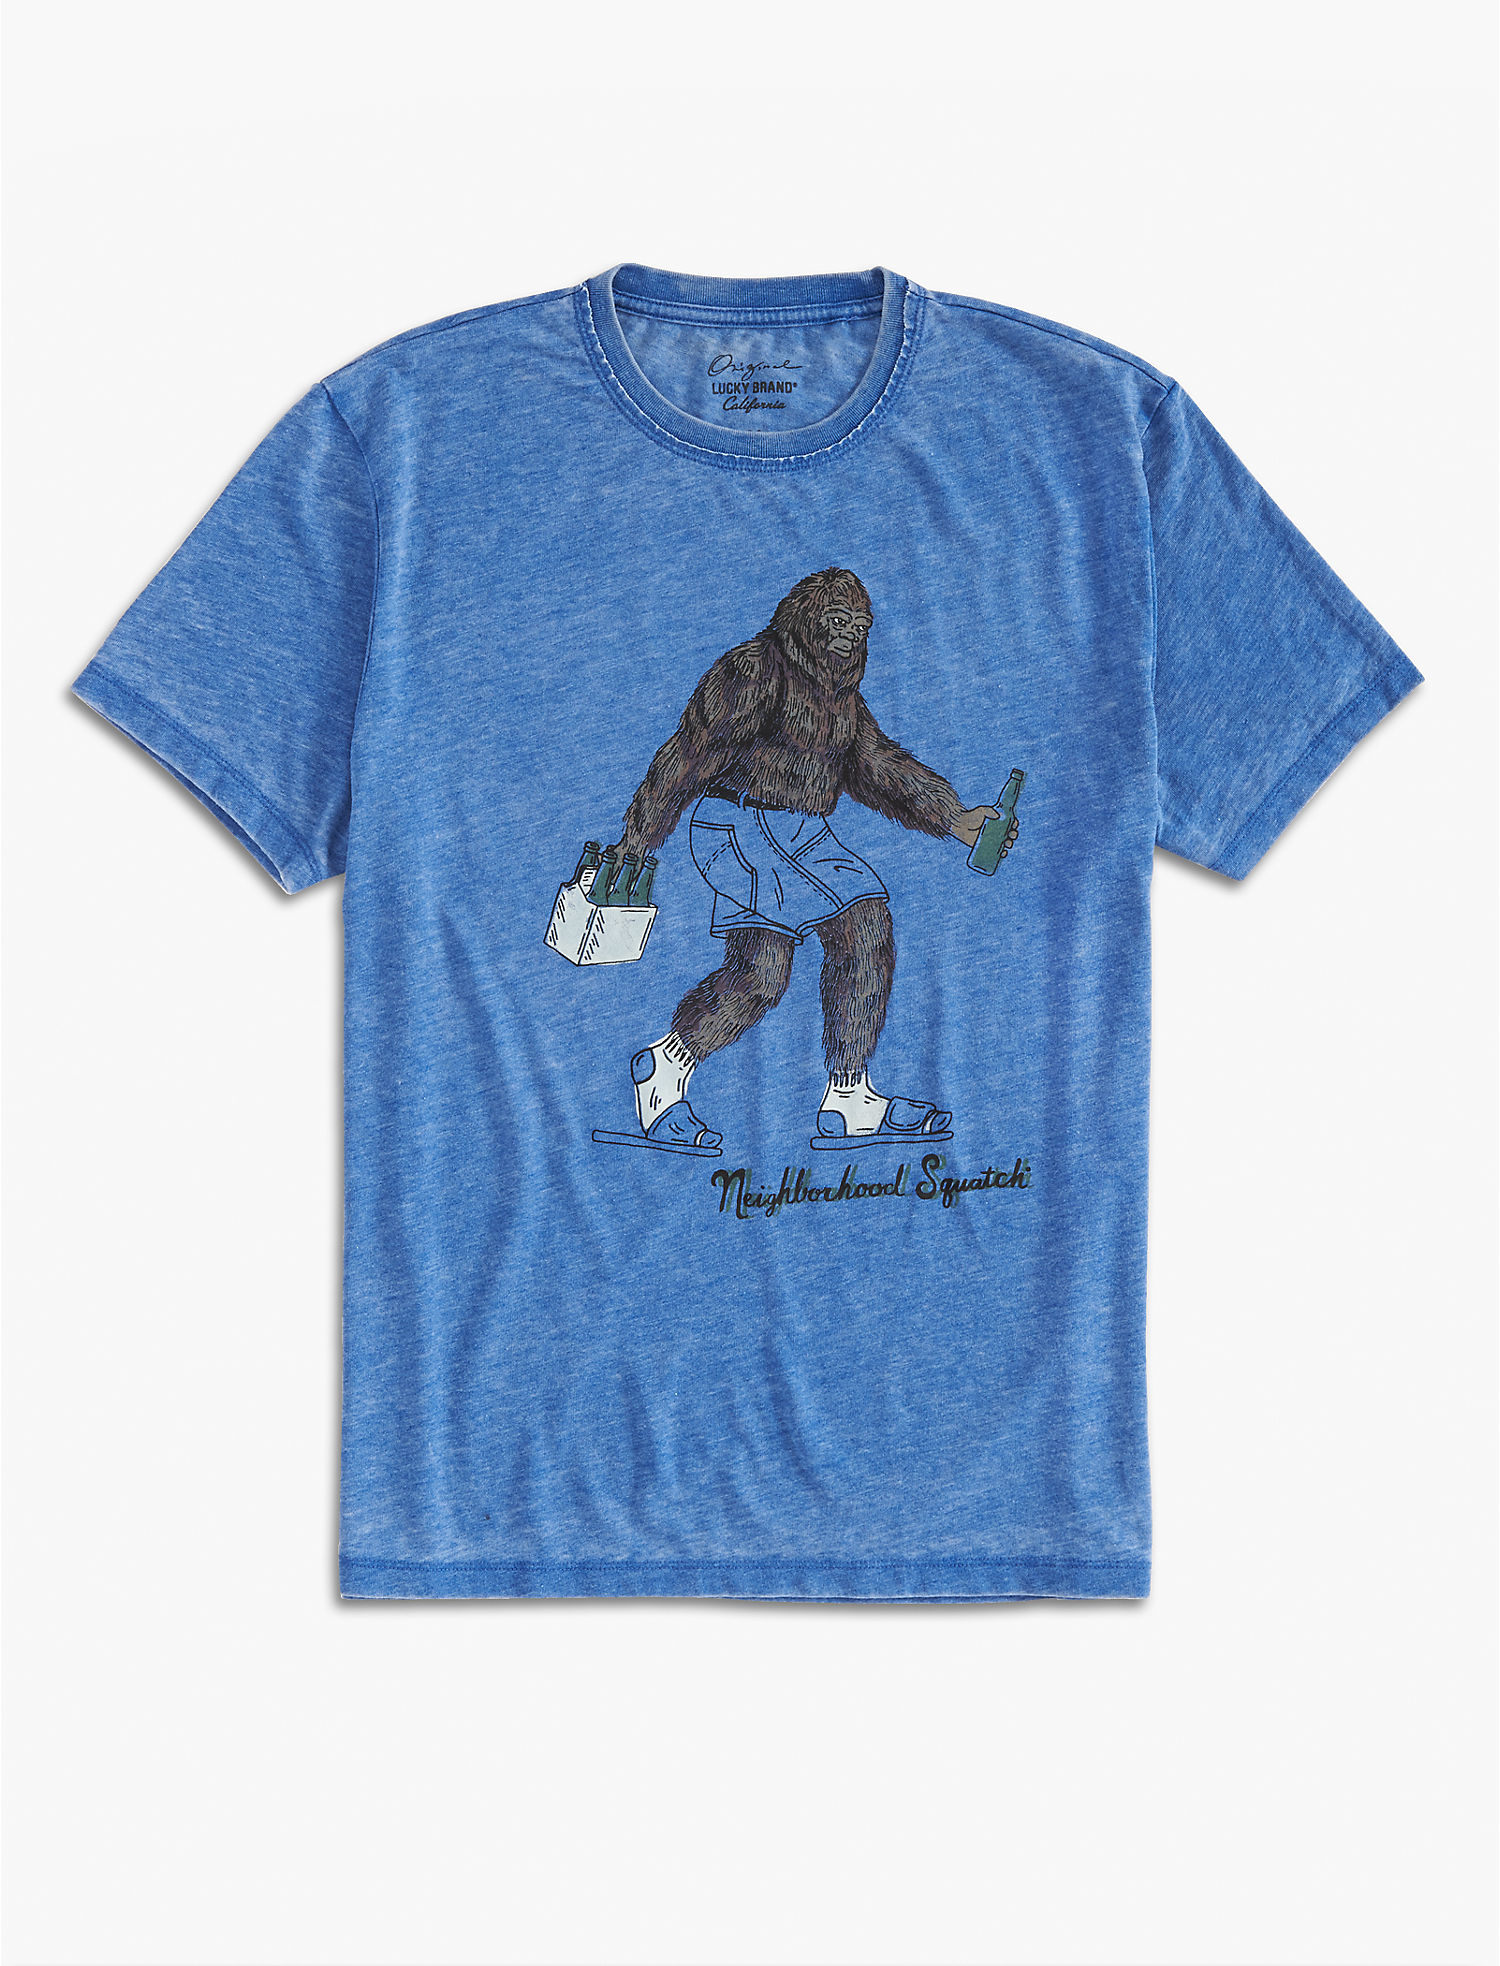 Anywhere Else Tee Lucky Brand Clearance Footlocker Best Wholesale For Sale J54Oa